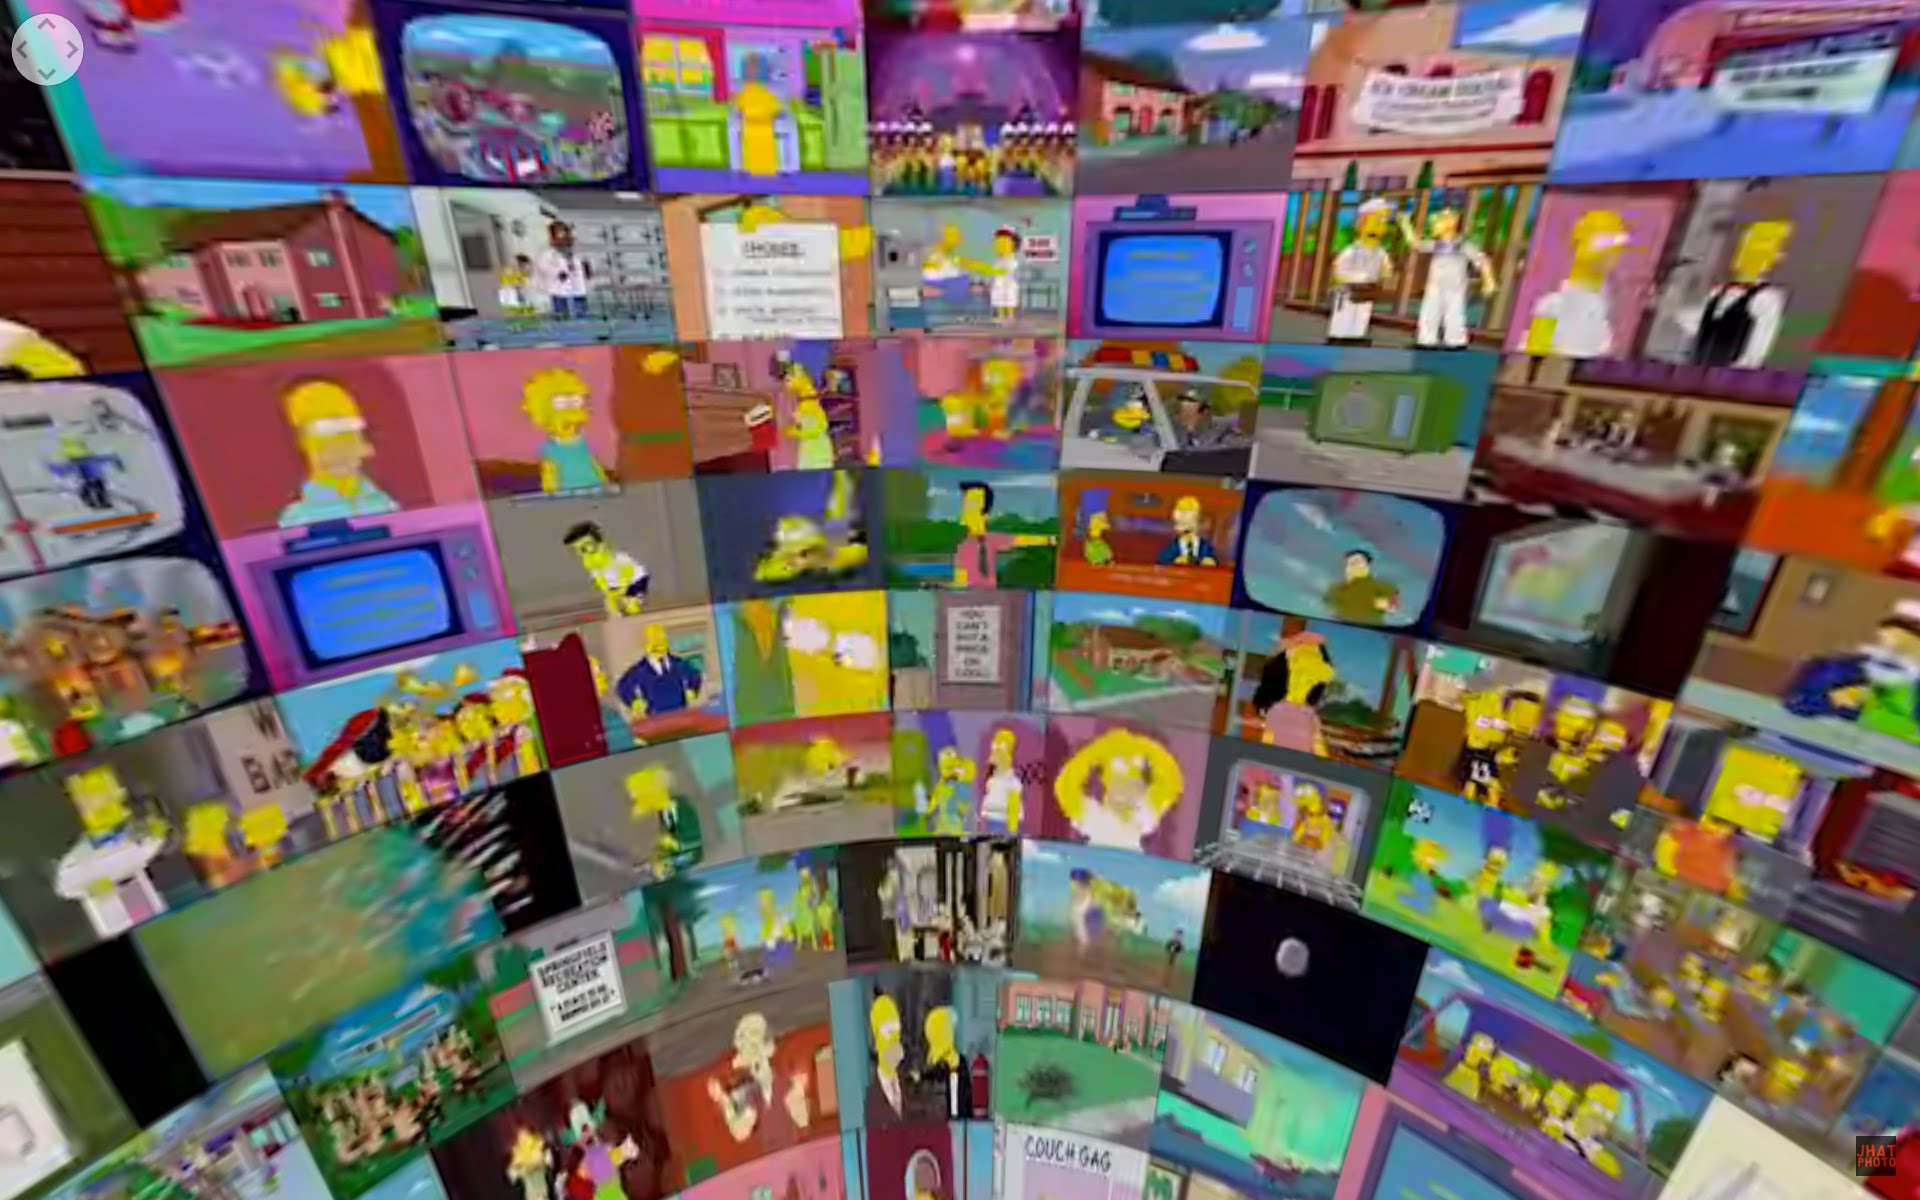 An Interactive 360 Degree YouTube Video Featuring 500 Episodes of The Simpsons All Playing at Once